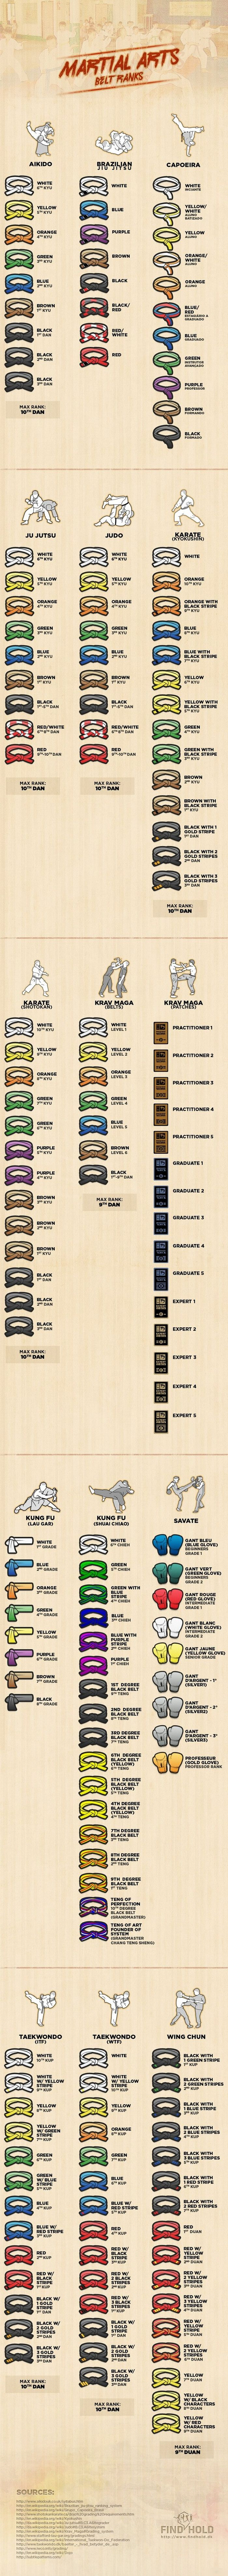 Martial Arts Belts And Colors By The Style (infographic)